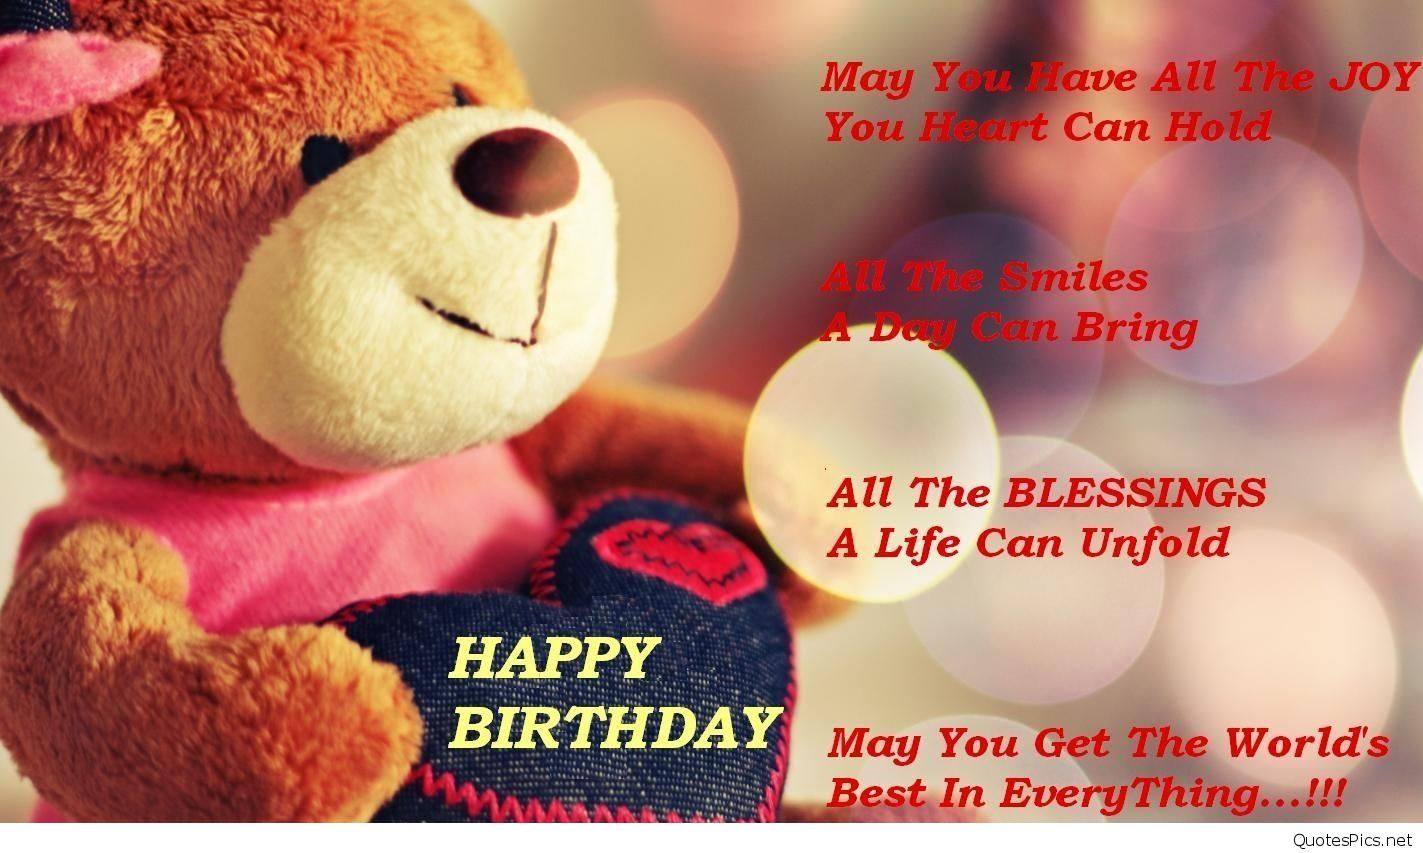 birthday wallpaper with quotes ; Happy-Birthday-HD-wallpaper-quote-2014-image